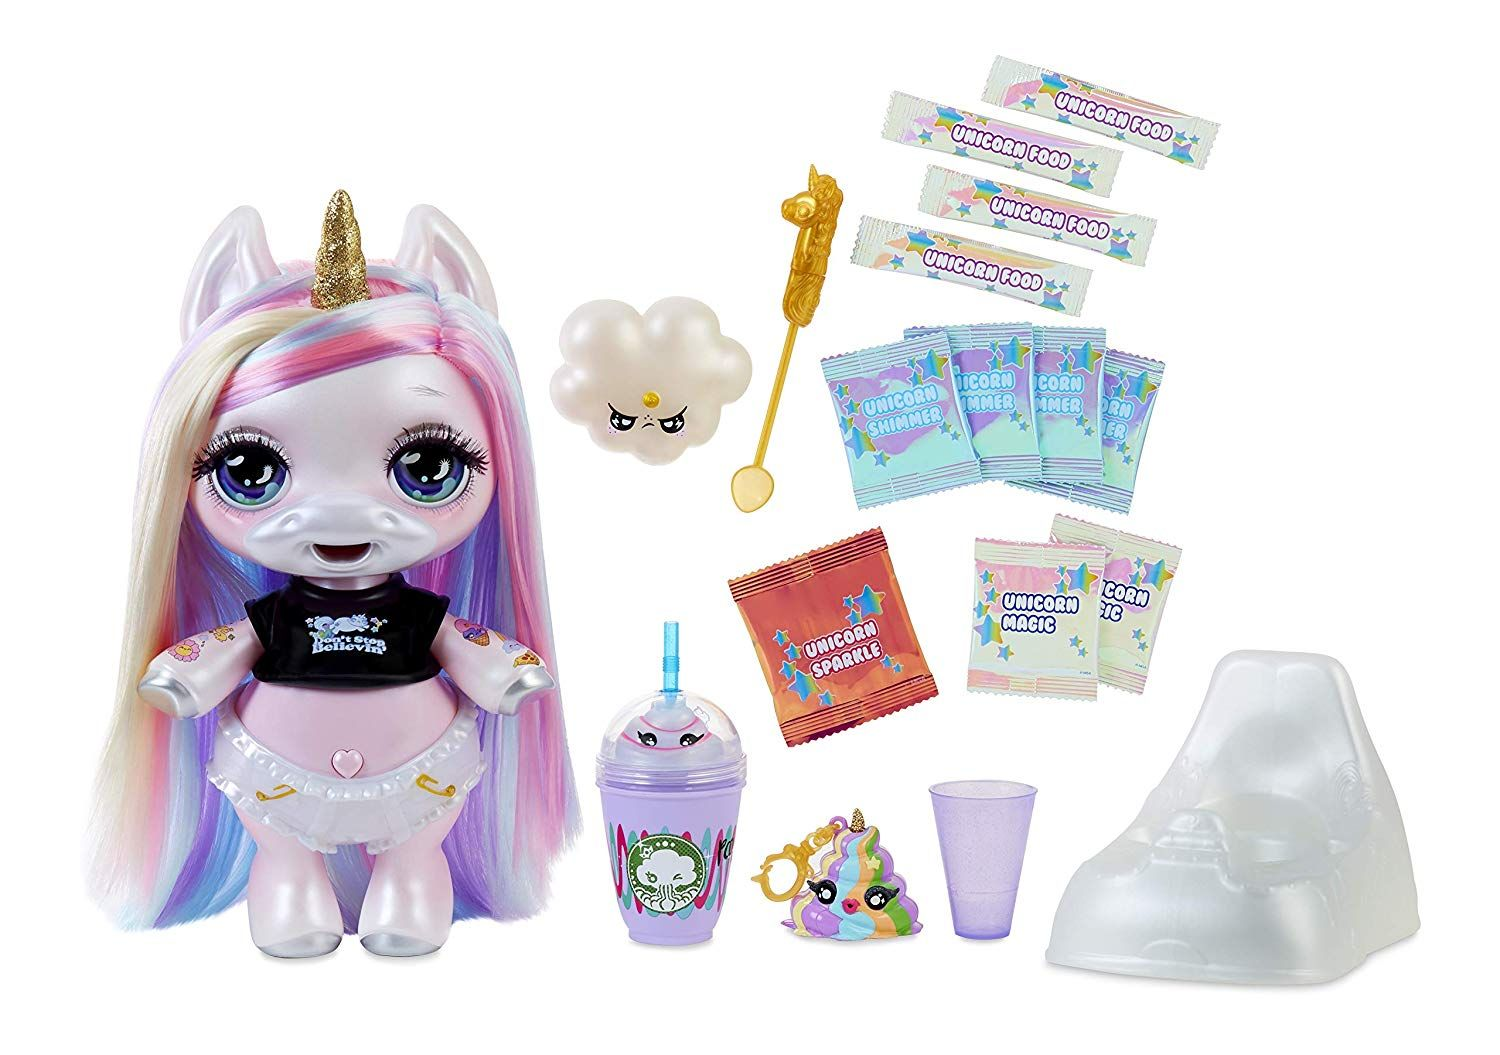 efb87d987 The Unicorn from Poopsie Unicorn Surprise | Doll collection ...